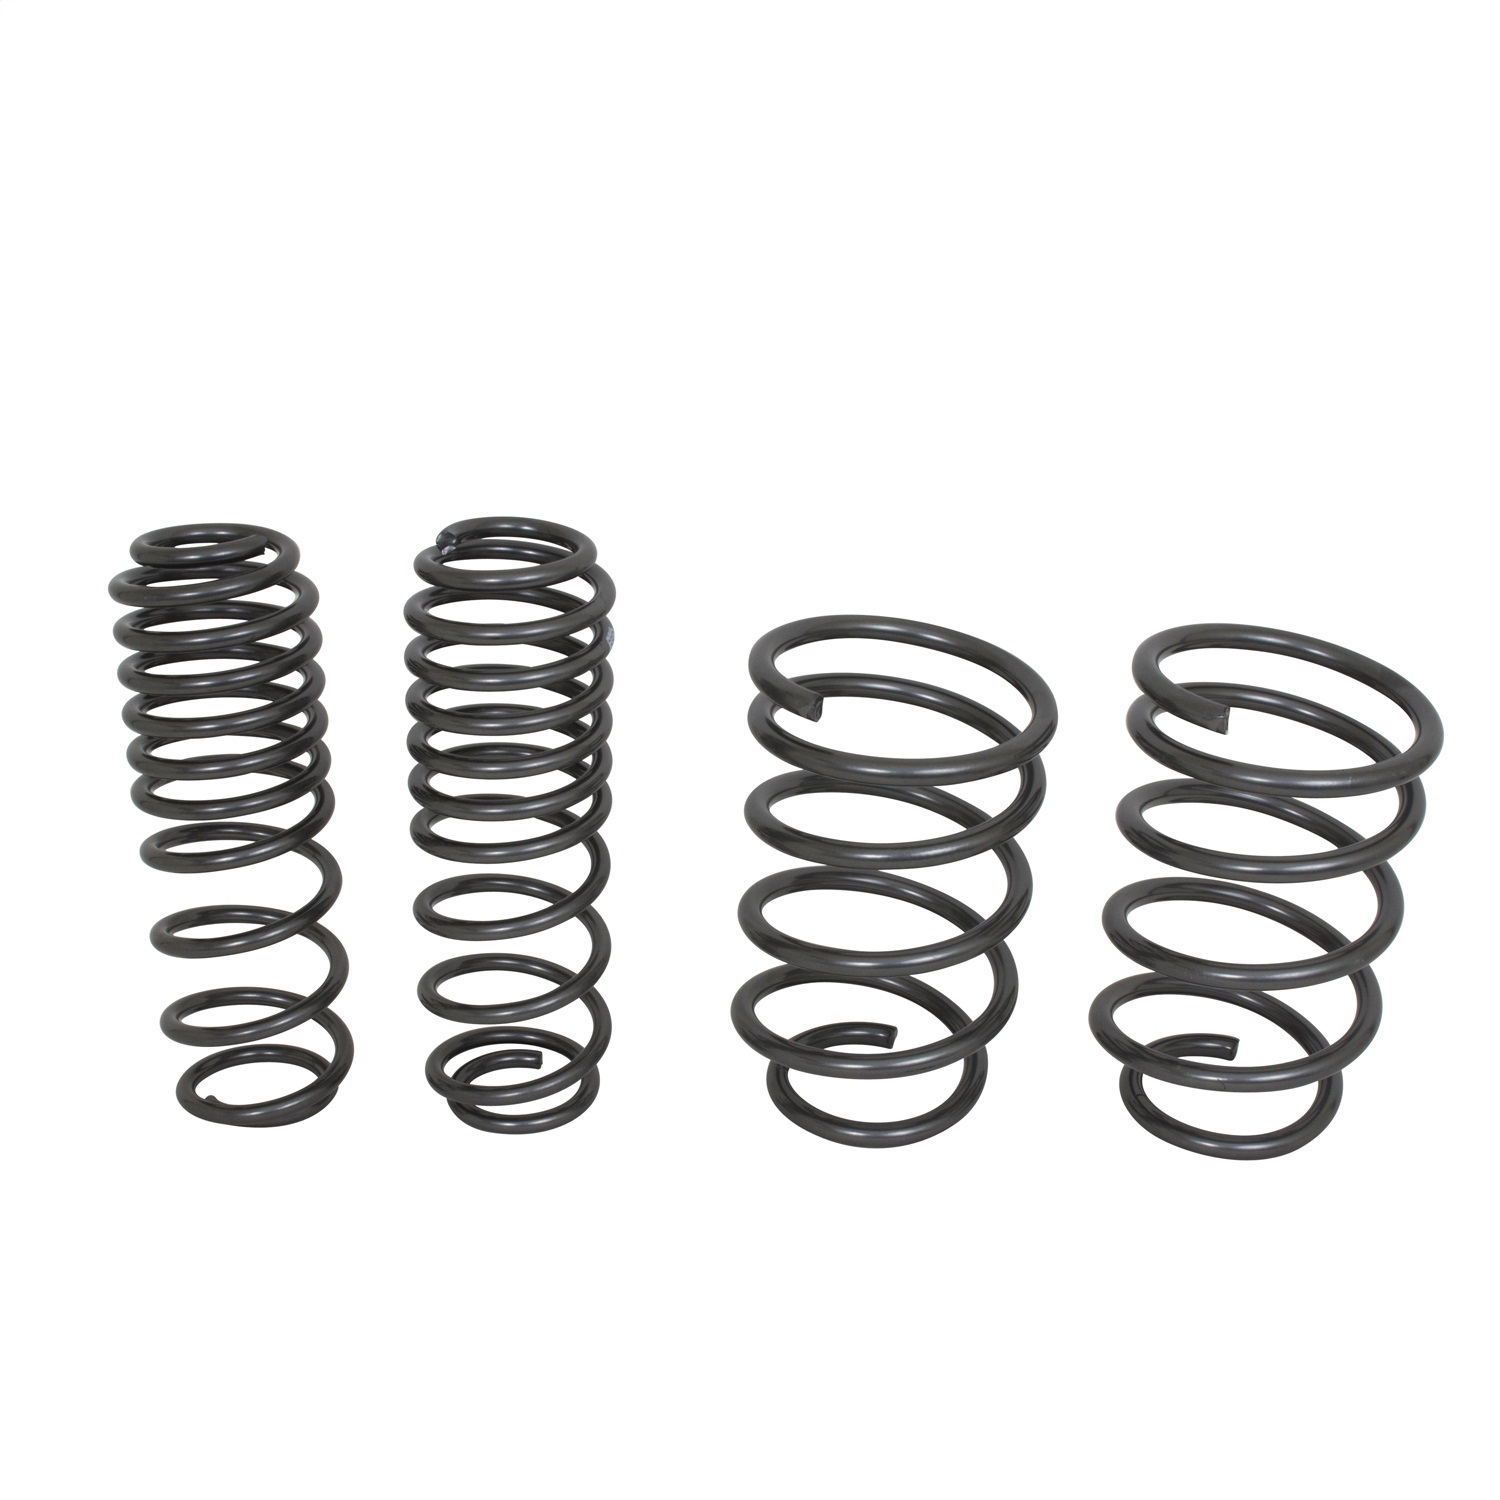 Bbk Performance Gripp Series Performance Lowering Spring System